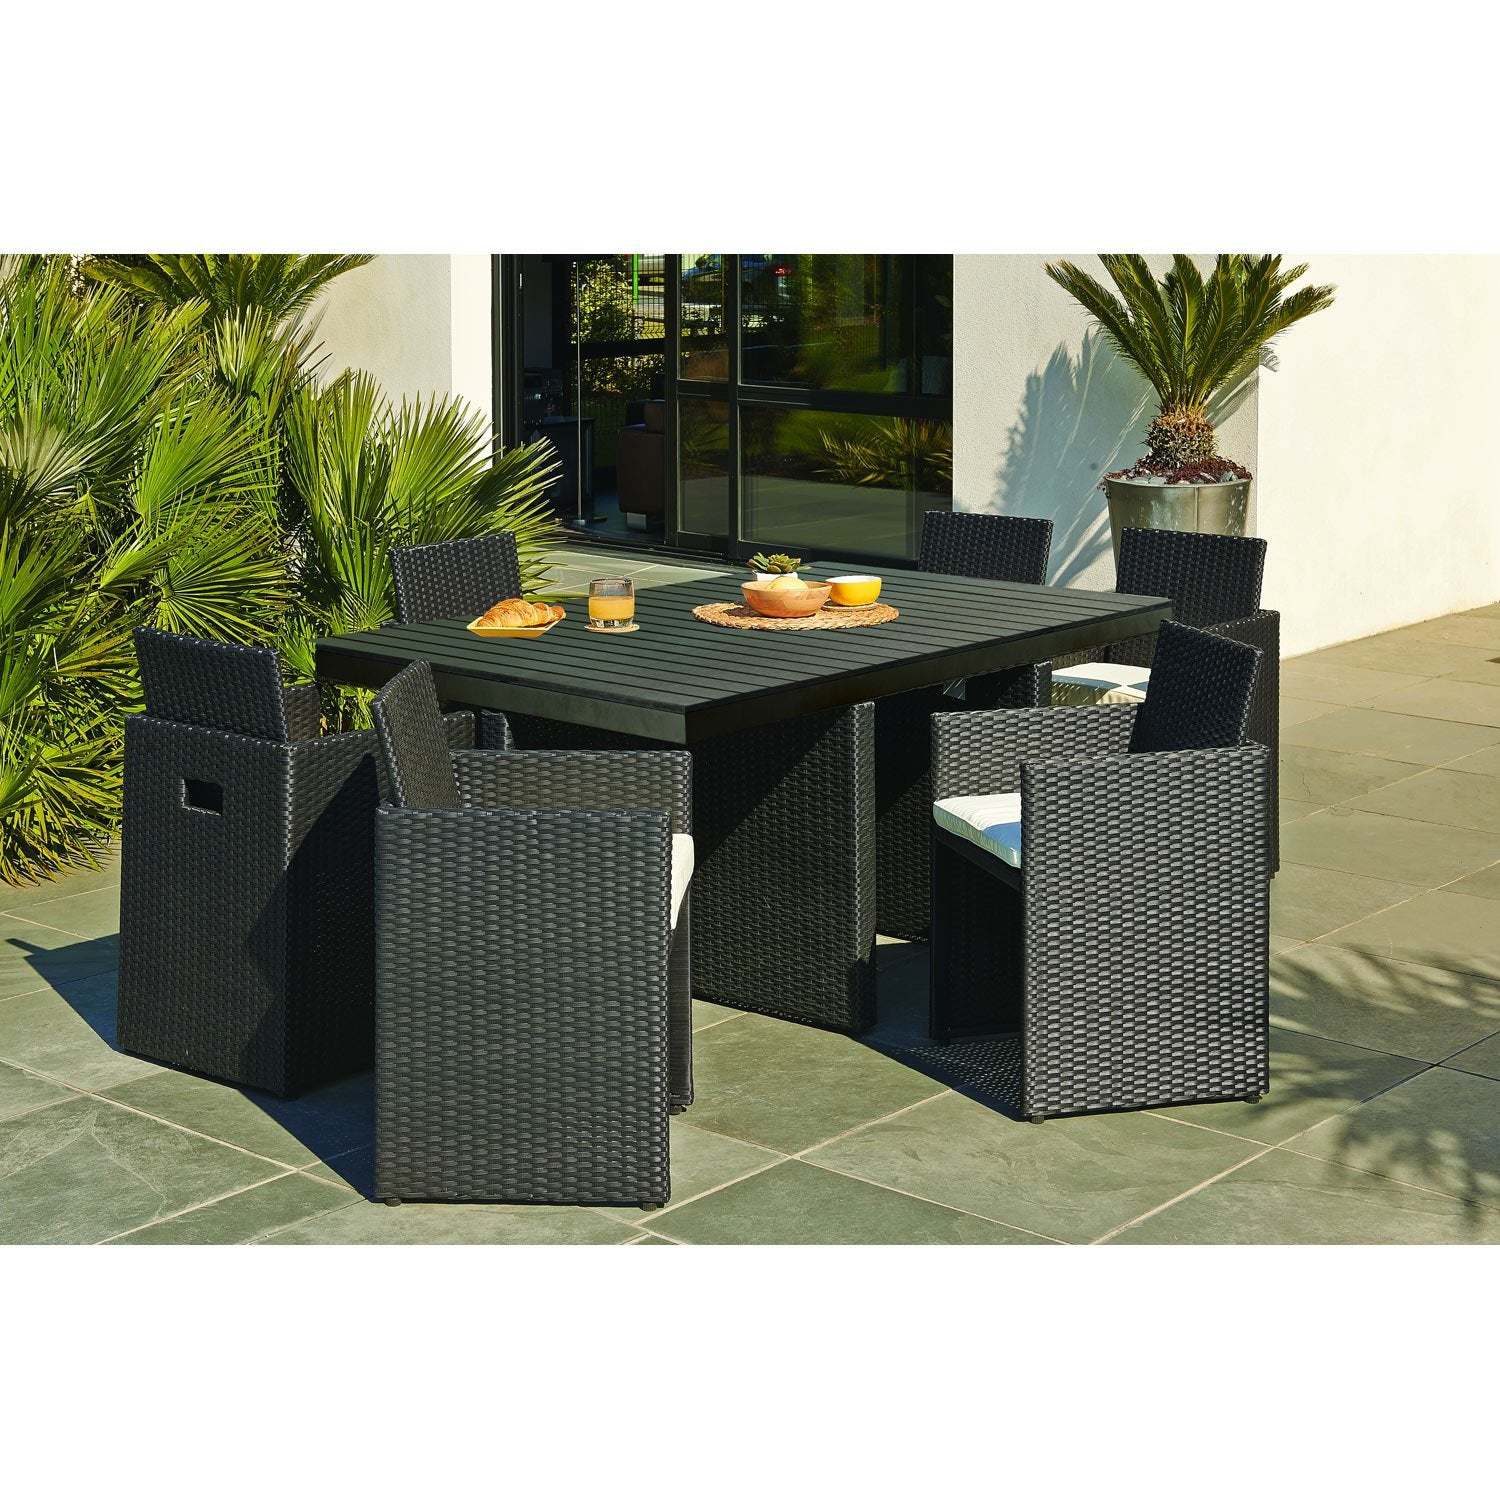 Salon de jardin encastrable r sine tress e noir 1 table - Salon de jardin leroy merlin resine ...